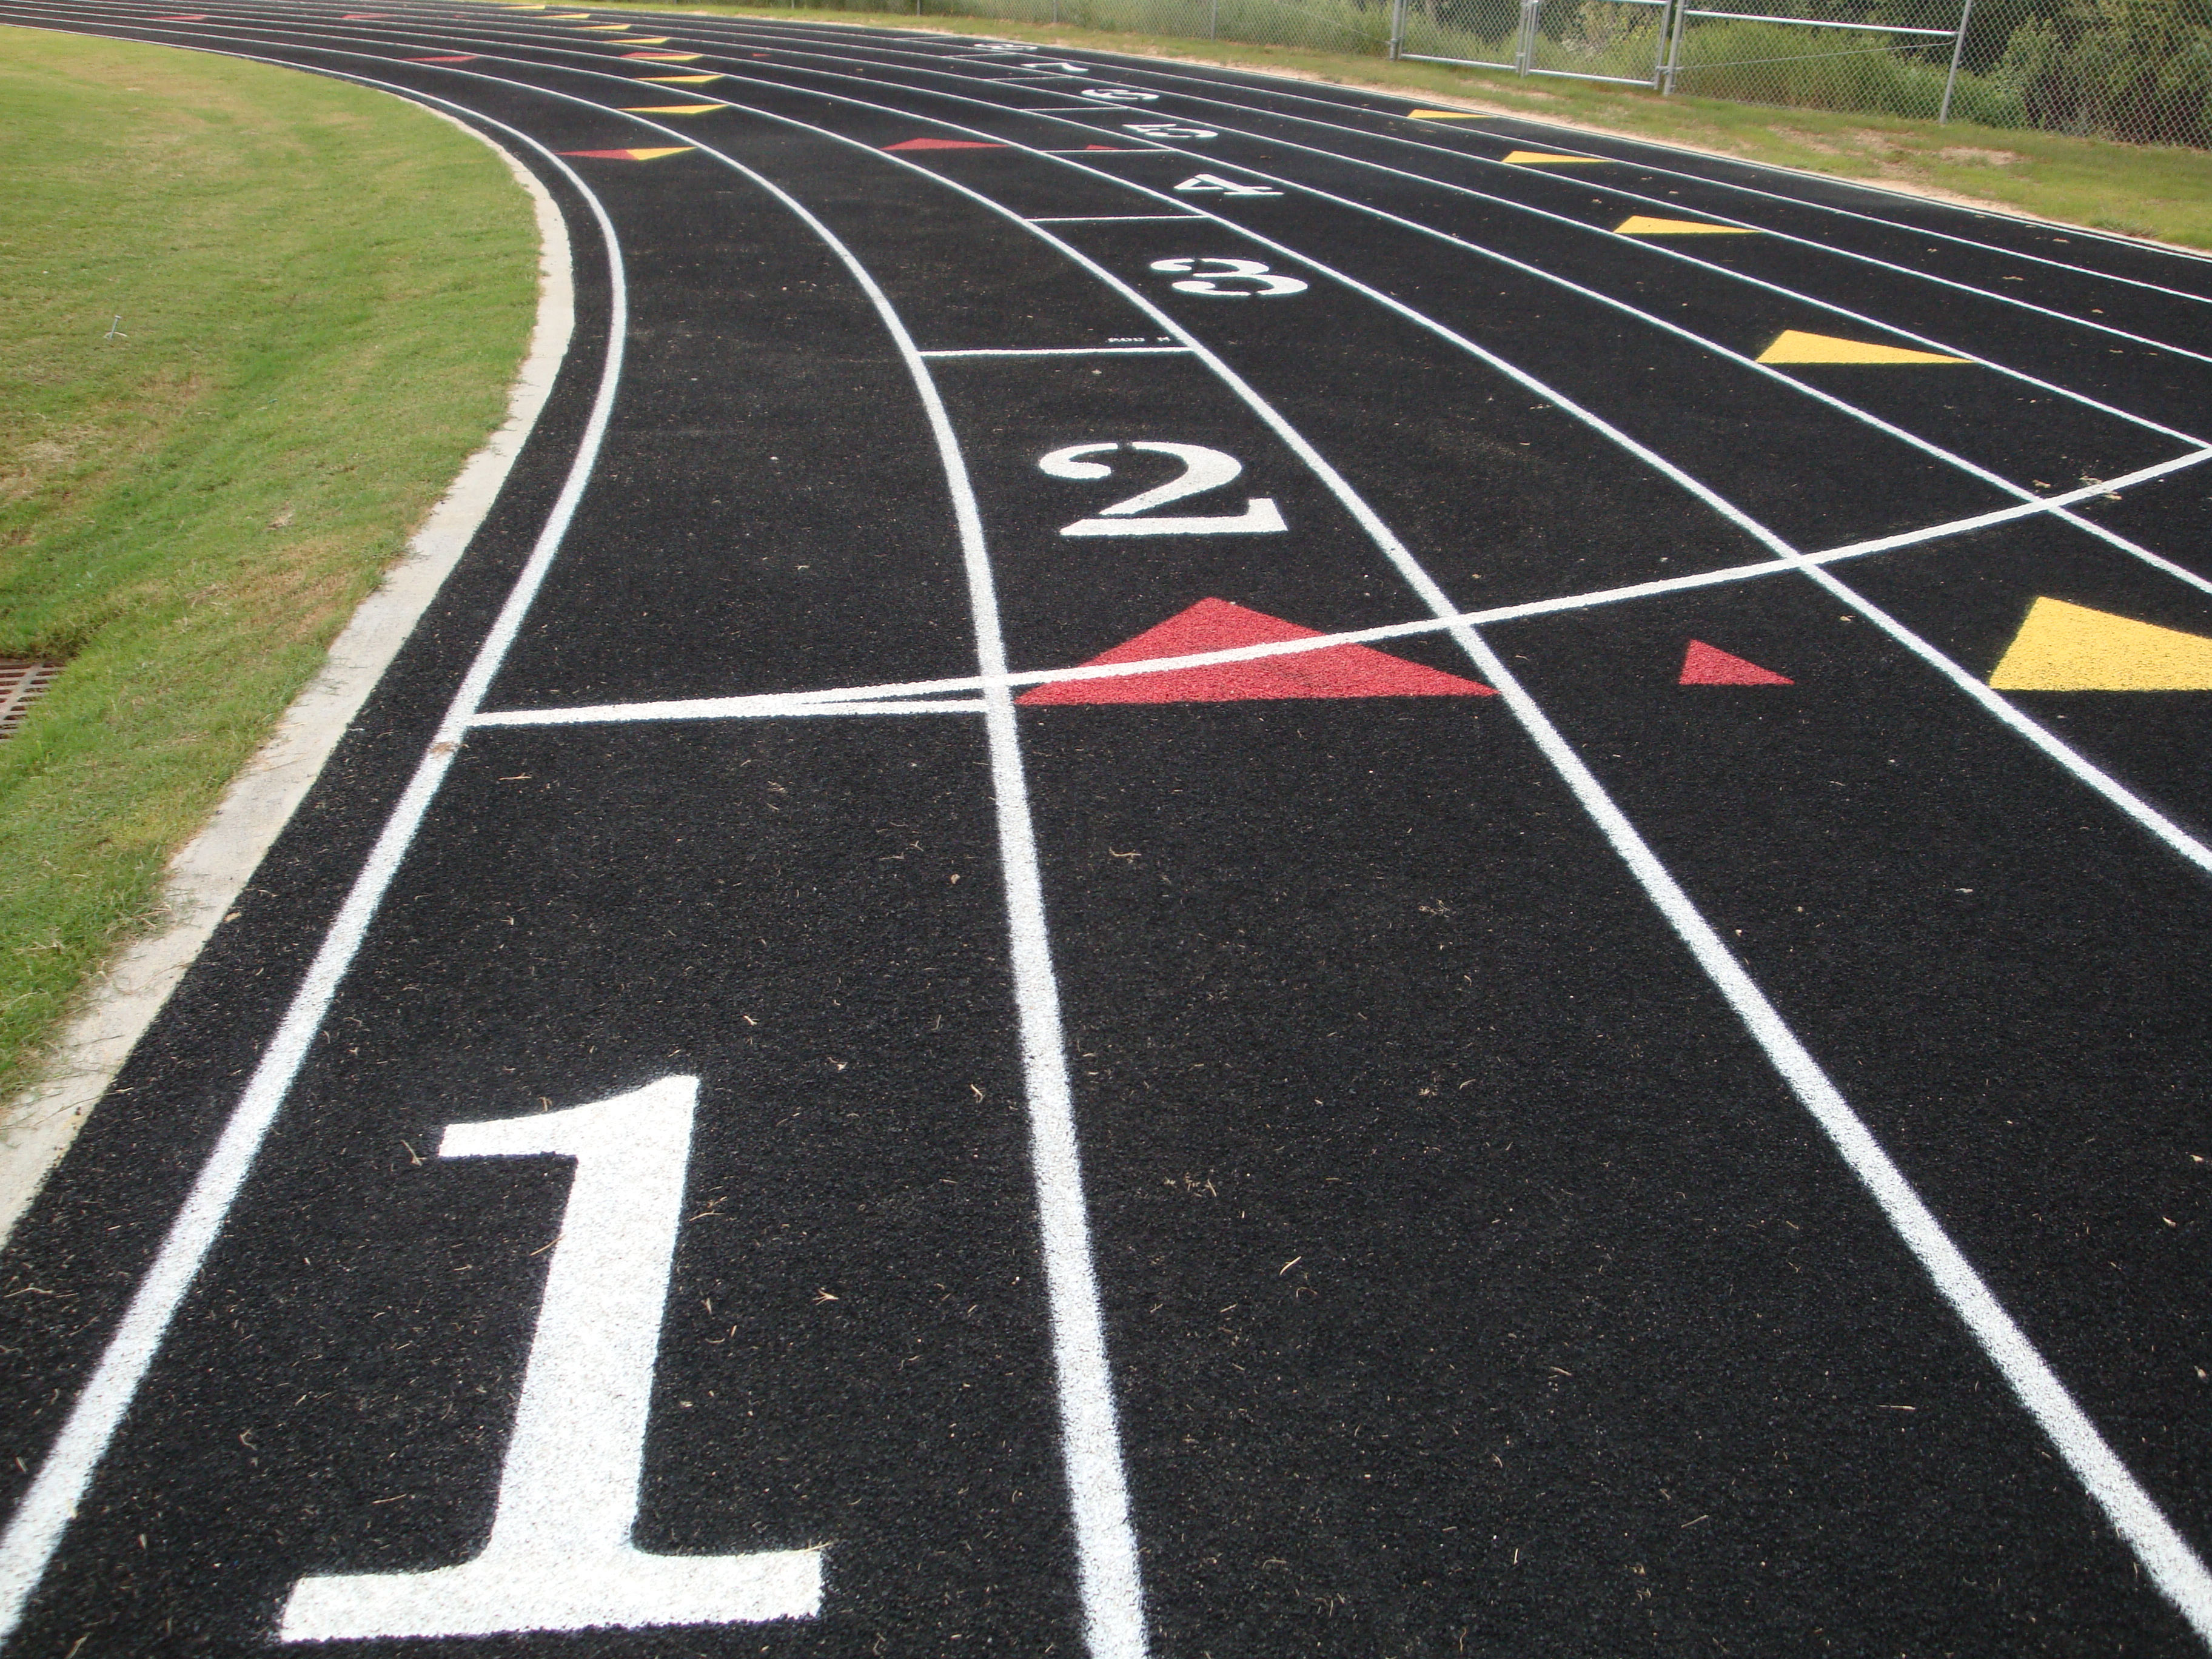 image of track